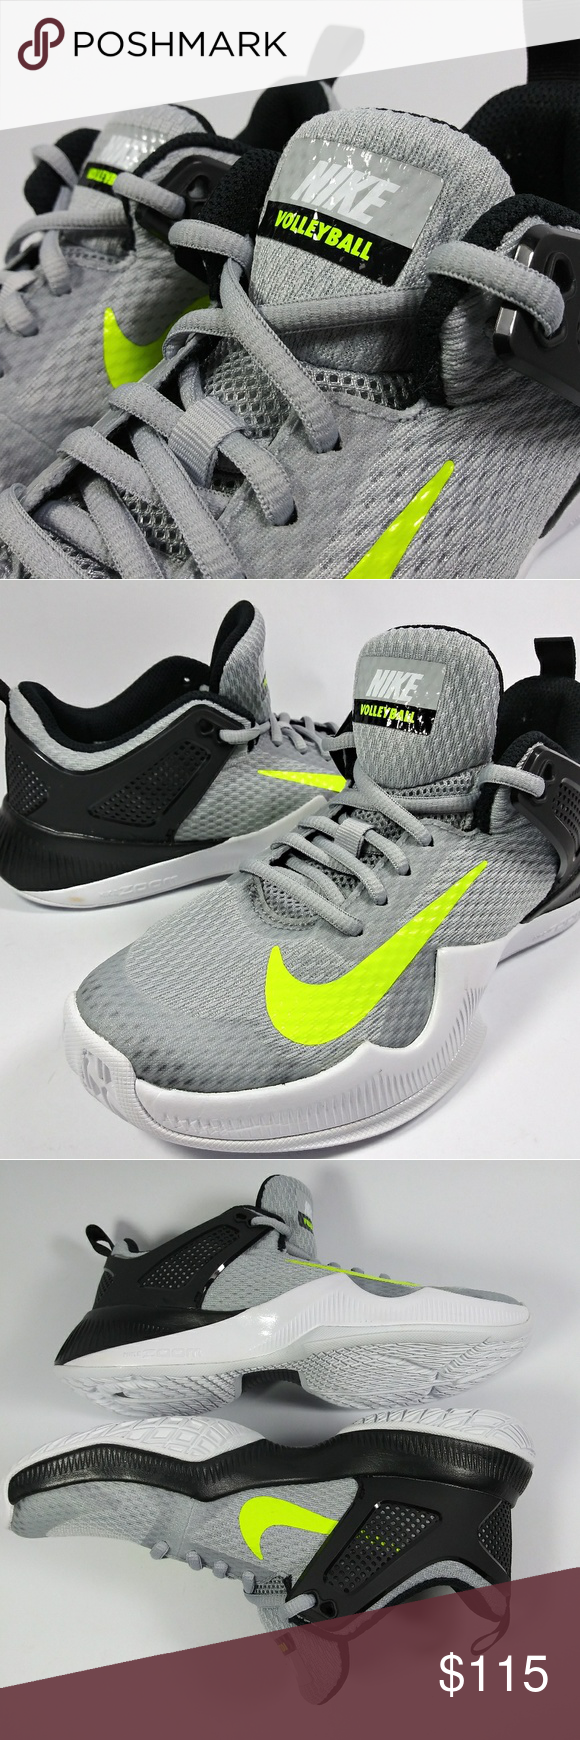 Nike Womens Air Zoom Hyperace Volleyball Shoes Nike Womens Air Zoom Hyperace Volleyball Shoes 902367 007 Sz 10 Wolf Volleyball Shoes Gray Nike Shoes Nike Women